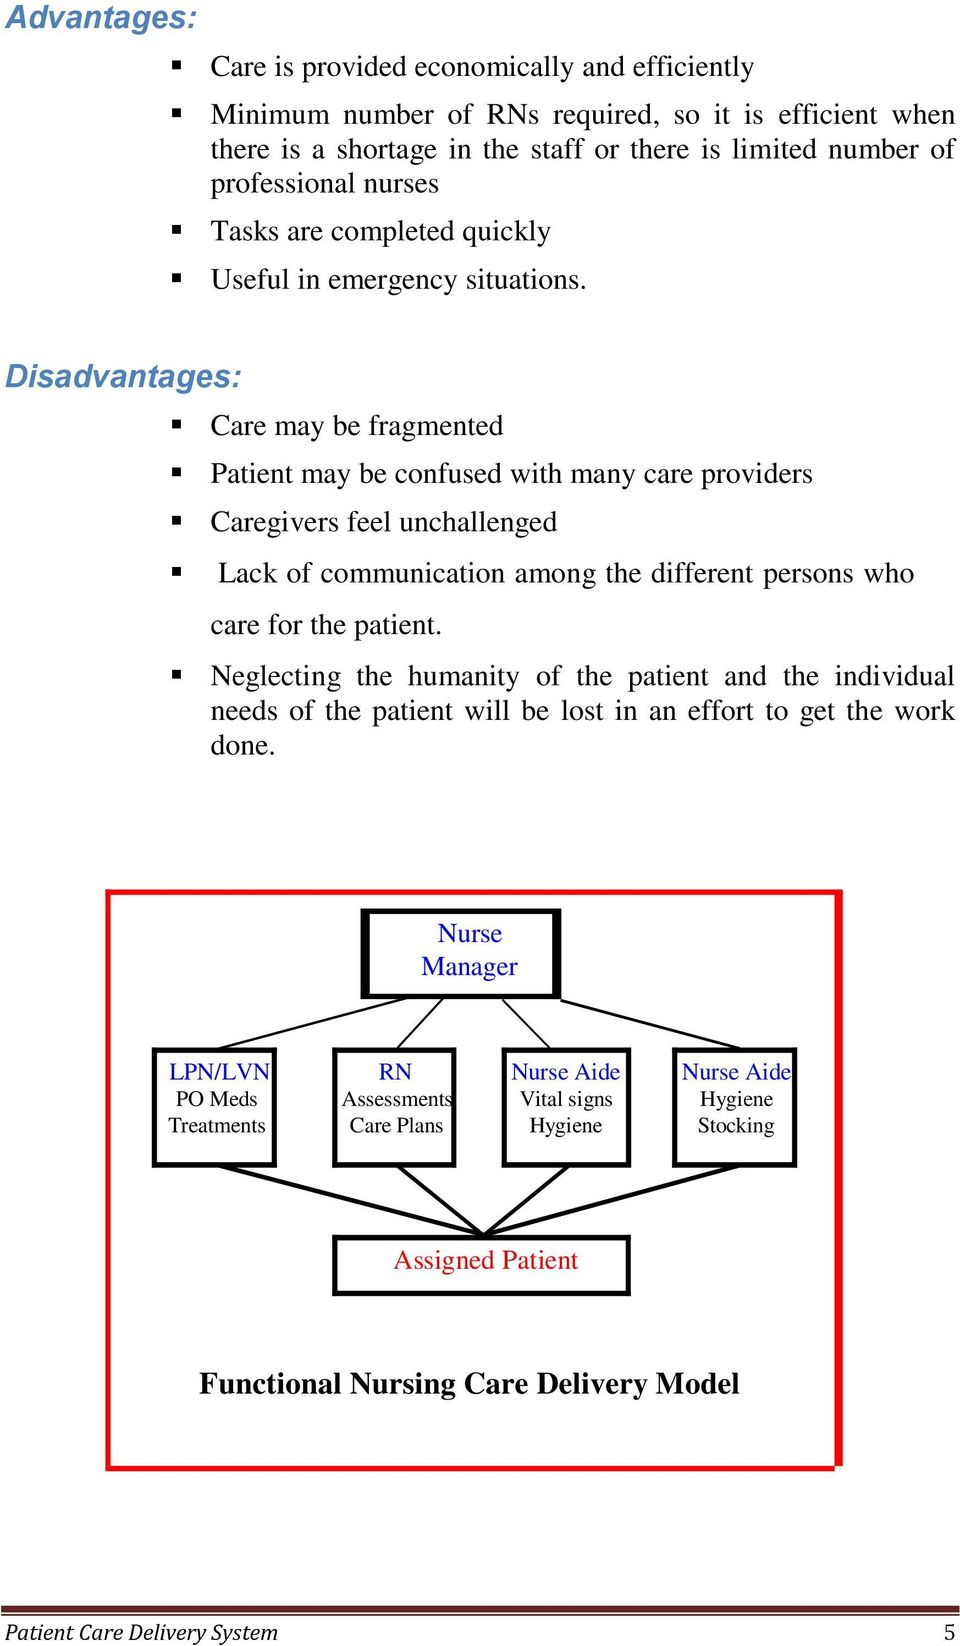 Disadvantages: Care may be fragmented Patient may be confused with many care providers Caregivers feel unchallenged Lack of communication among the different persons who care for the patient.